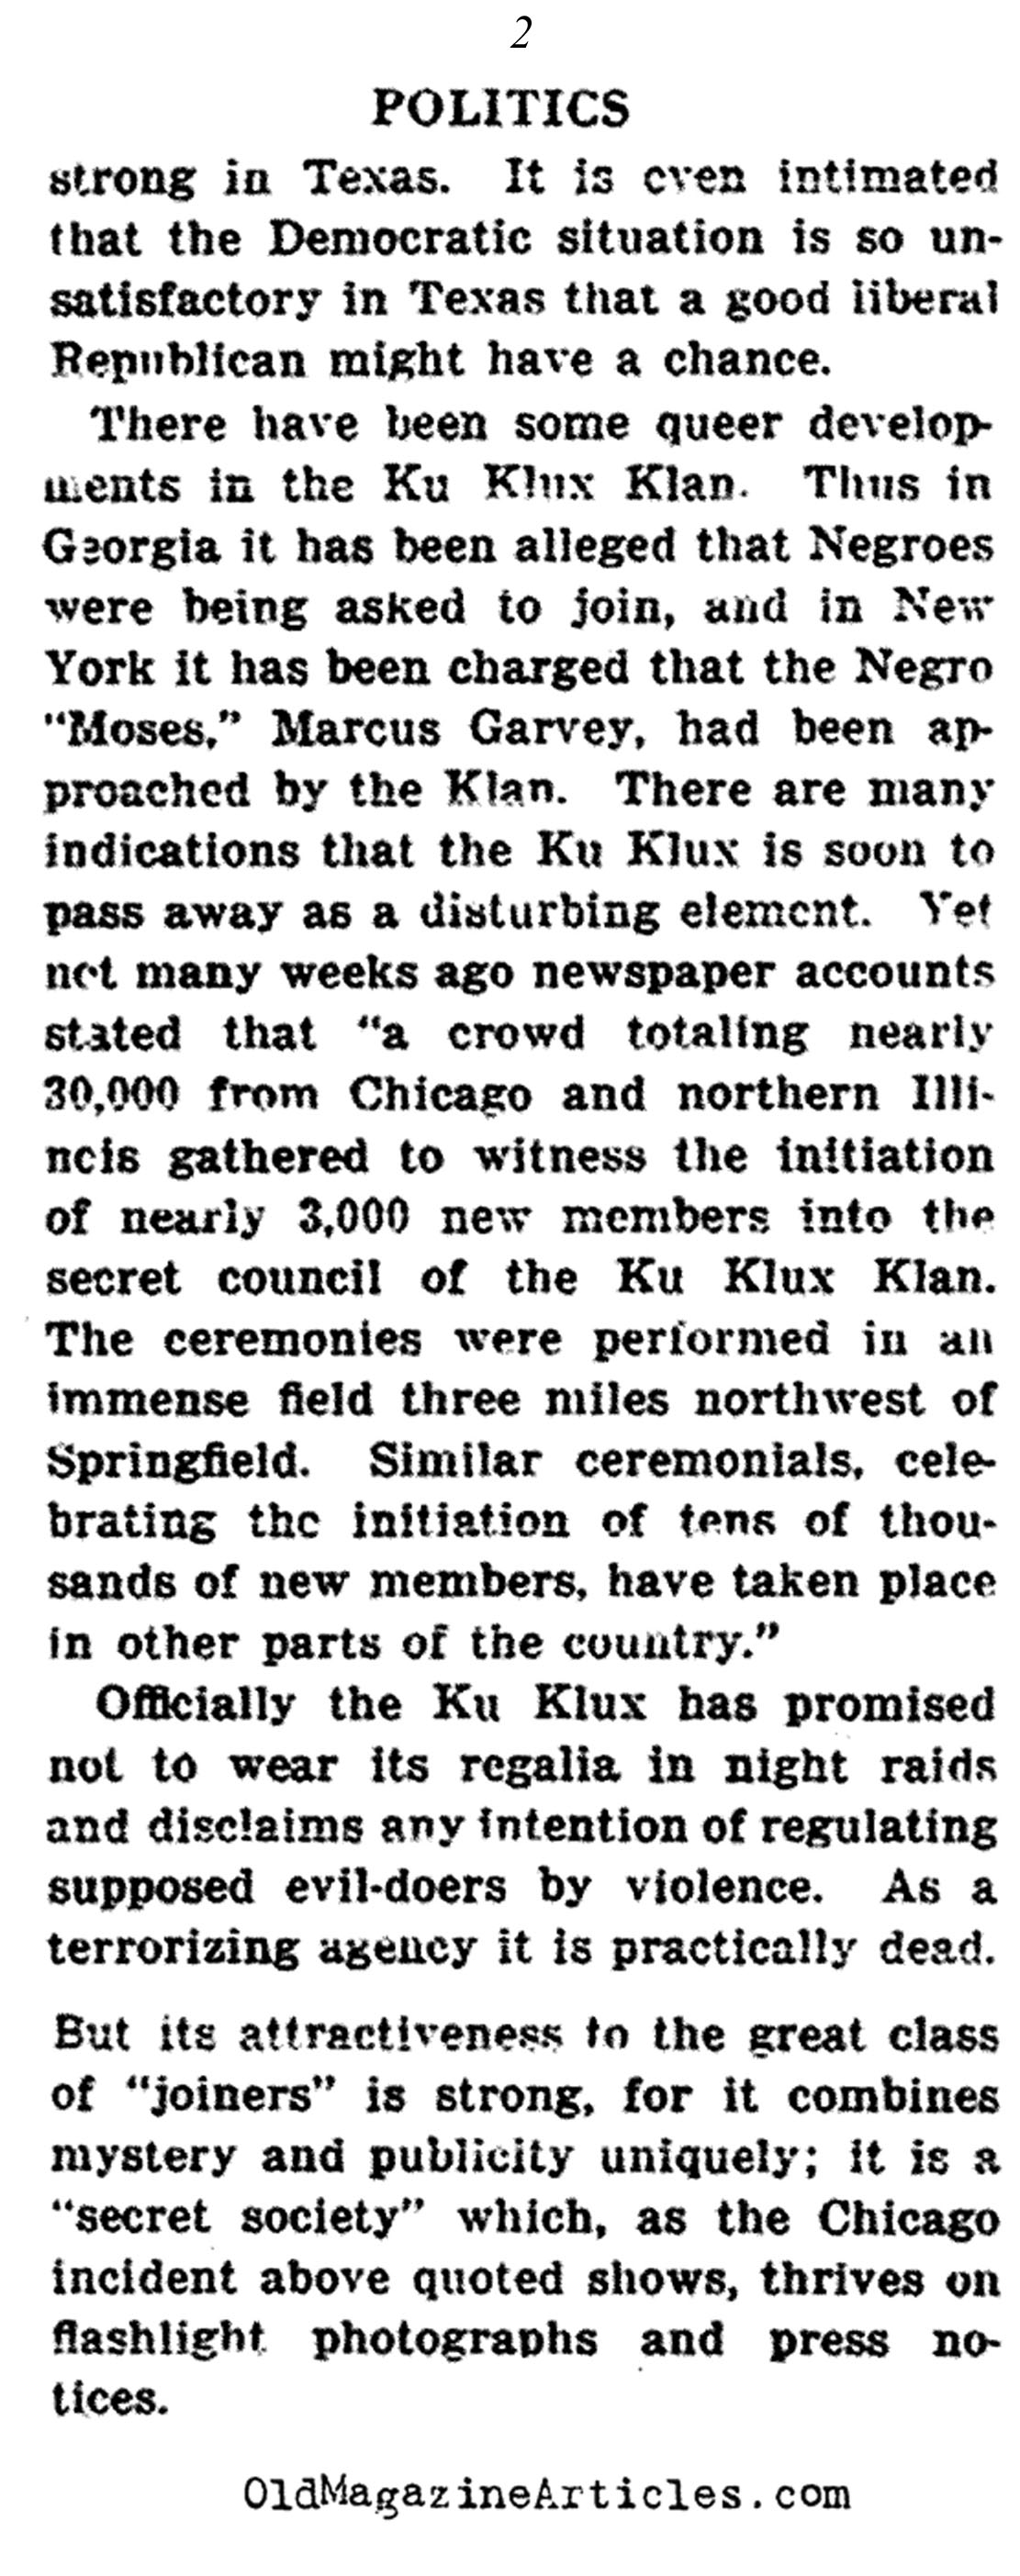 Weird Rumors About the Klan...  (The Outlook, 1922)